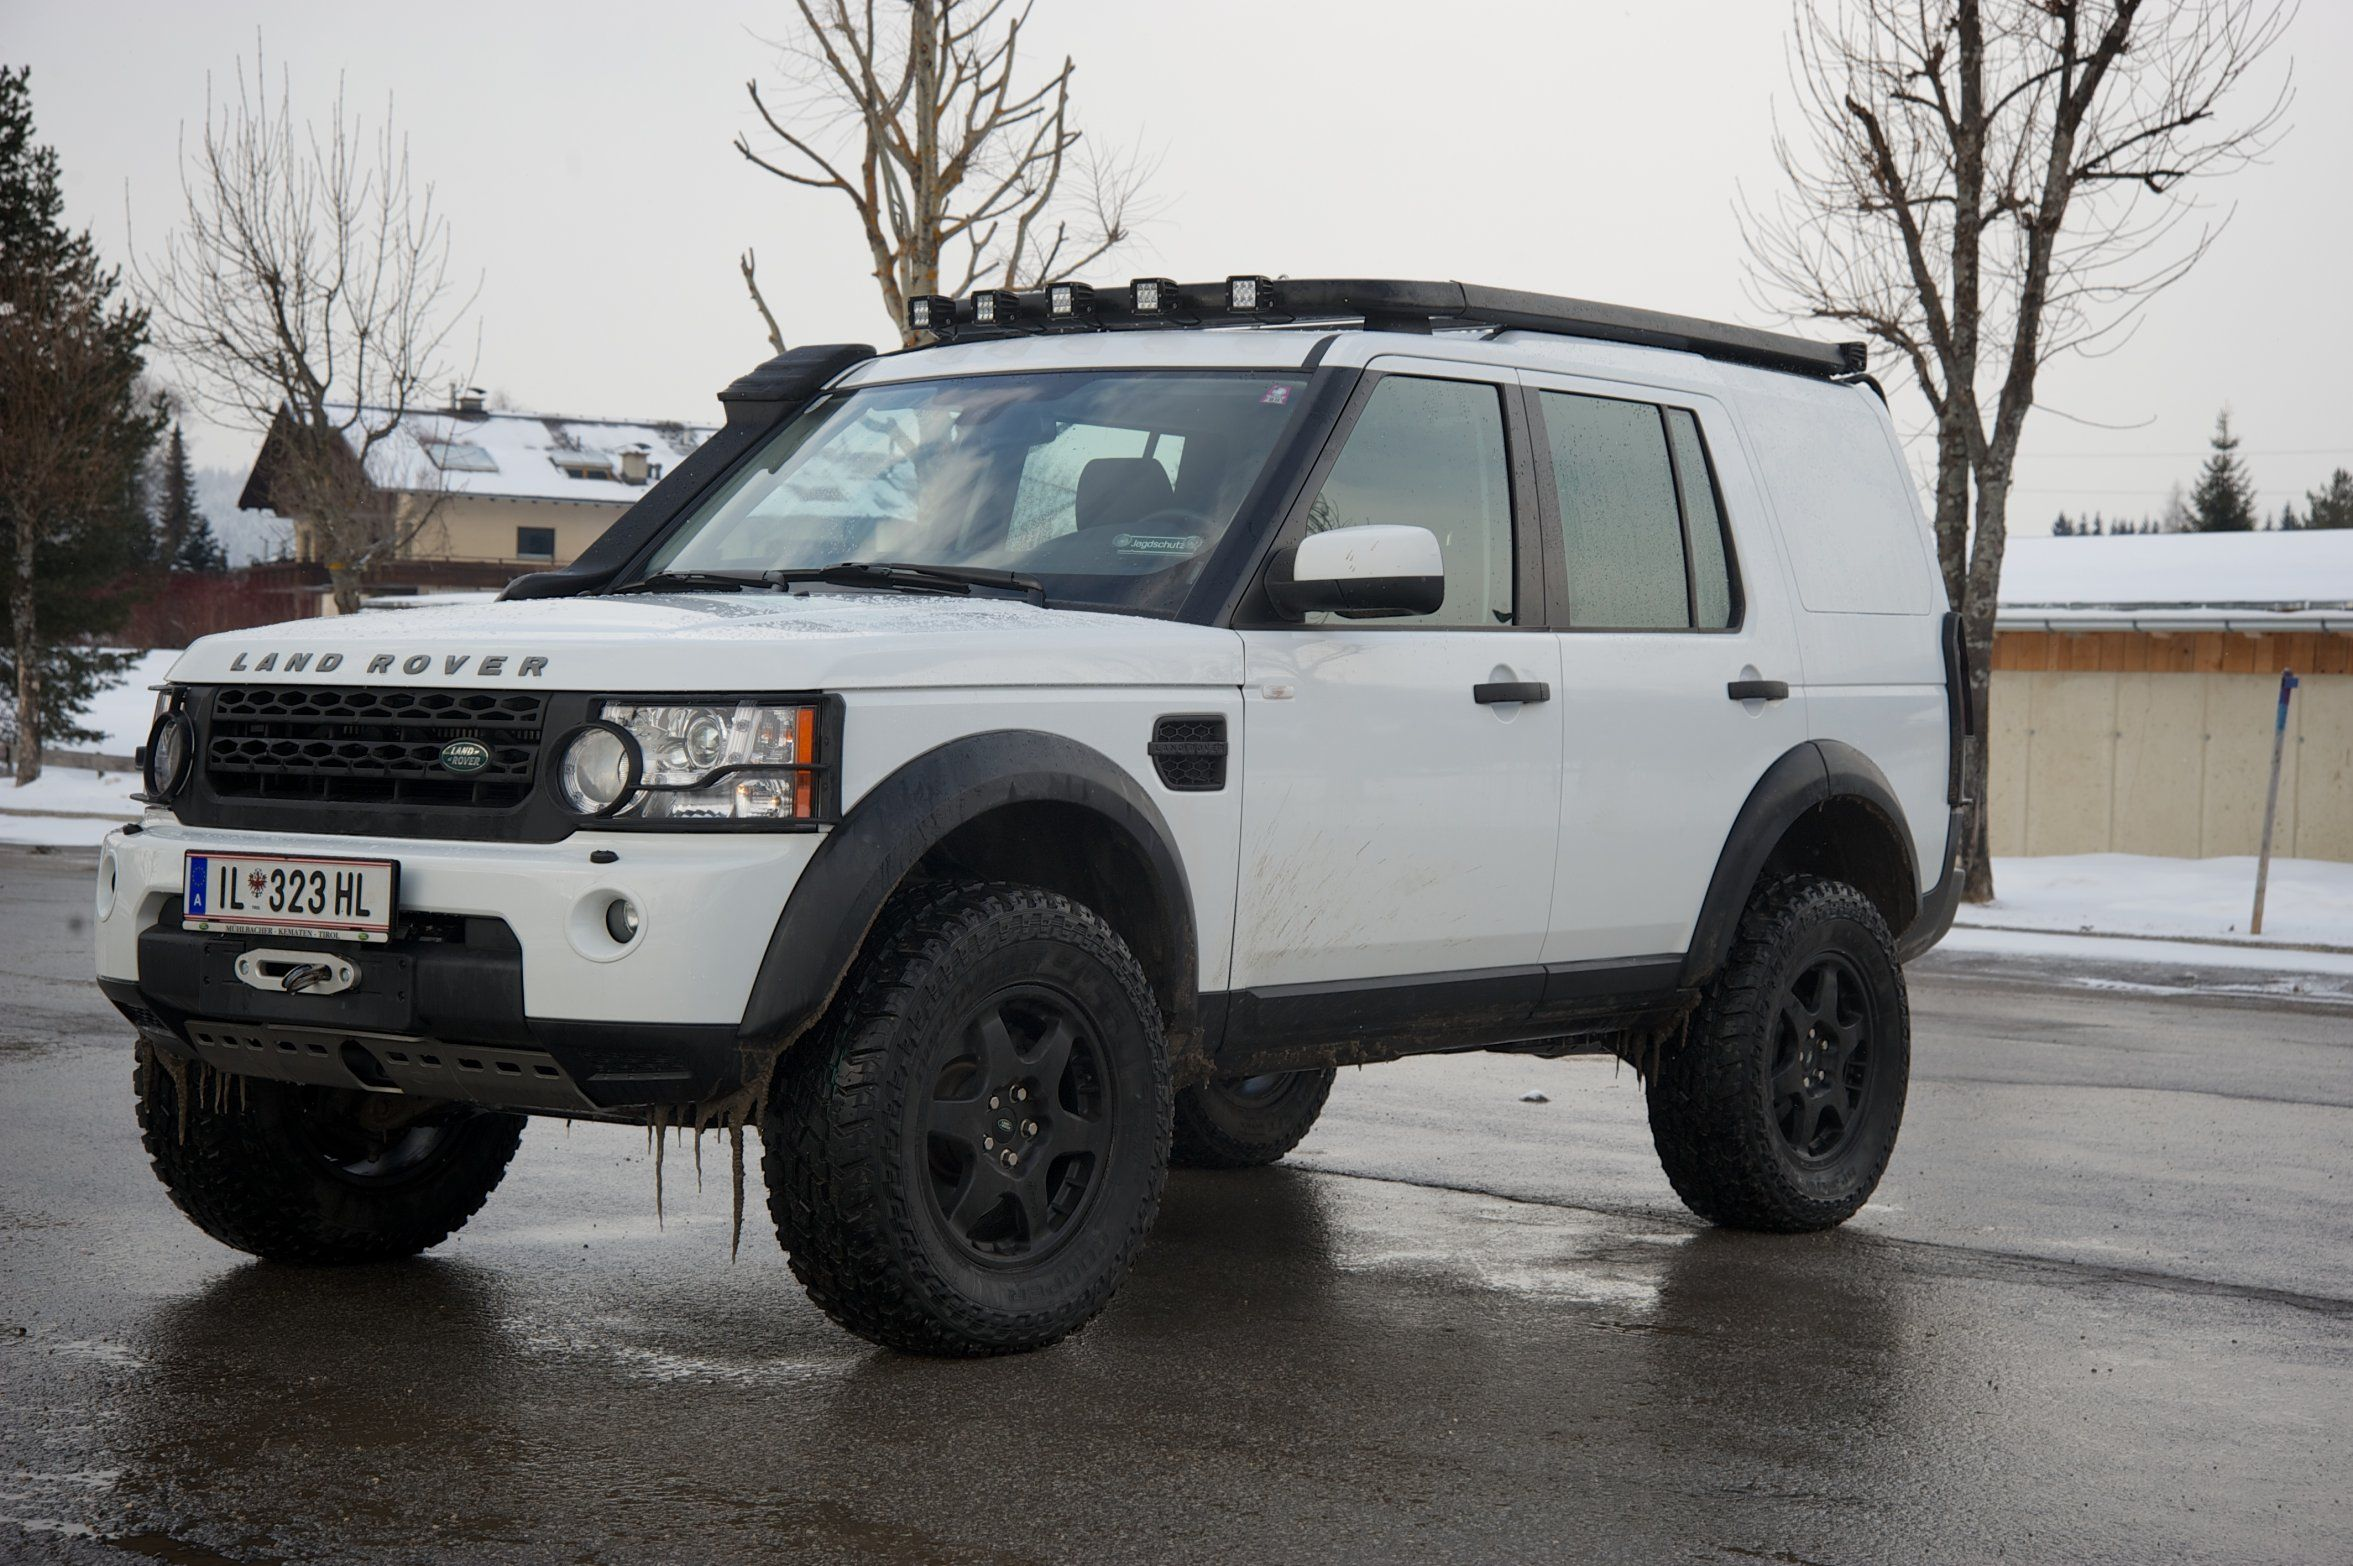 Landrover Discovery With Roof Rack And Spare Tire Mount | Wheels |  Pinterest | Land Rovers, Roof Rack And Wheels